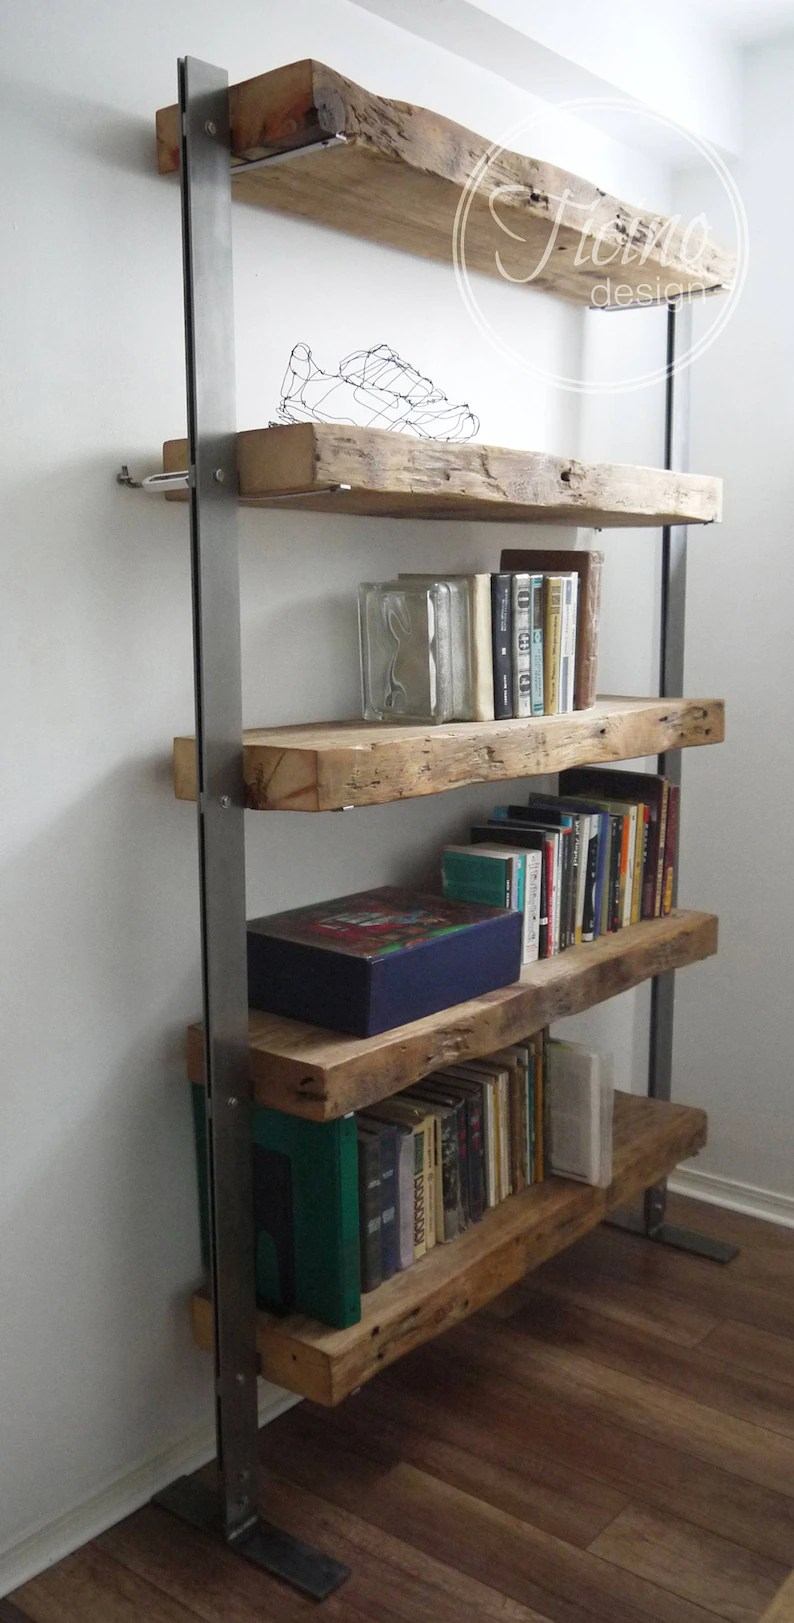 Reclaimed Wood Bookcase Wood And Metal Shelves Industrial Shelving Unit Rustic Wood Shelves Book Shelves Industrial Furniture